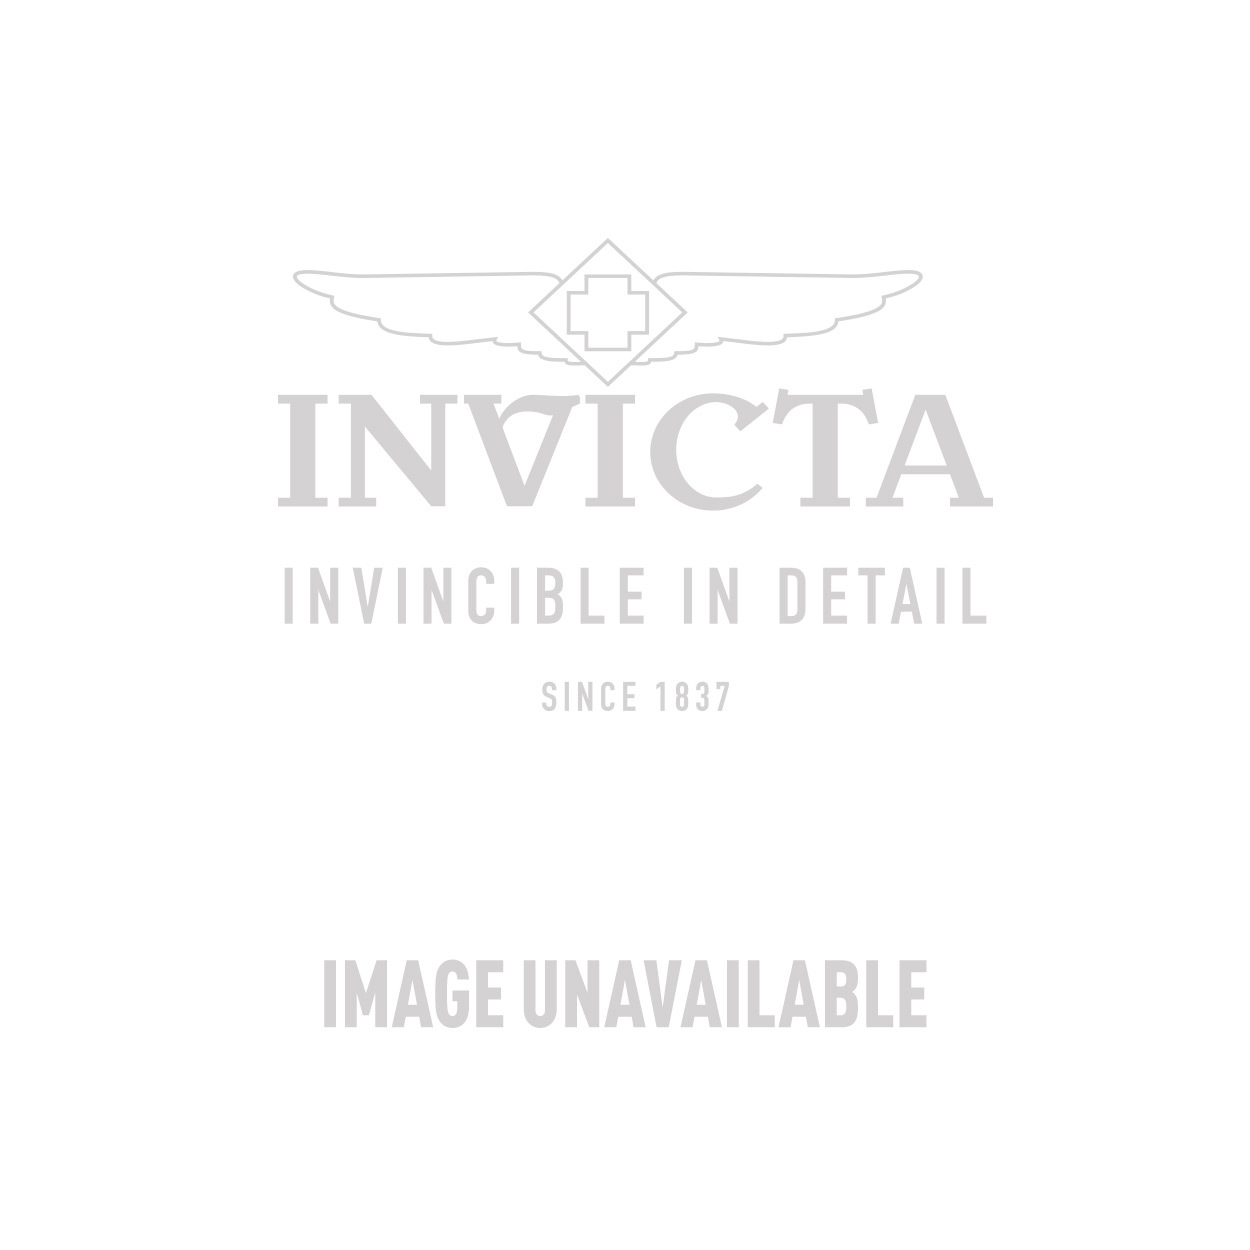 Invicta Speedway Quartz Watch - Rose Gold, Black case with Rose Gold tone Stainless Steel band - Model 10705